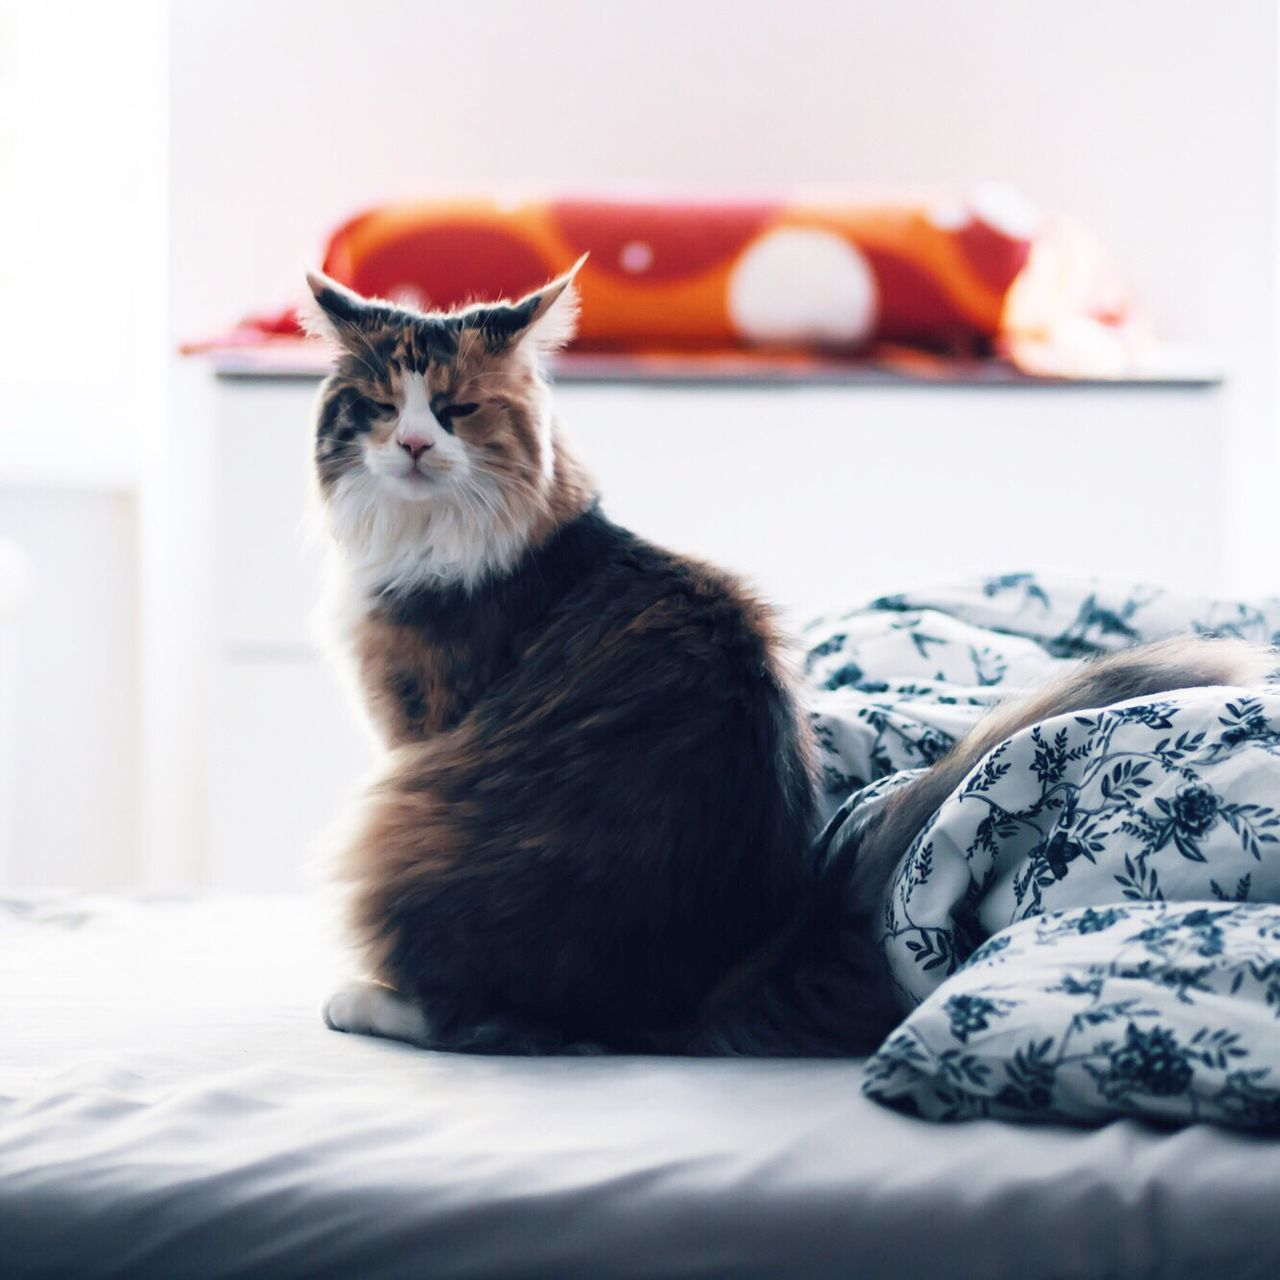 domestic cat, pets, one animal, animal themes, domestic animals, sitting, feline, cat, mammal, indoors, bed, no people, day, close-up